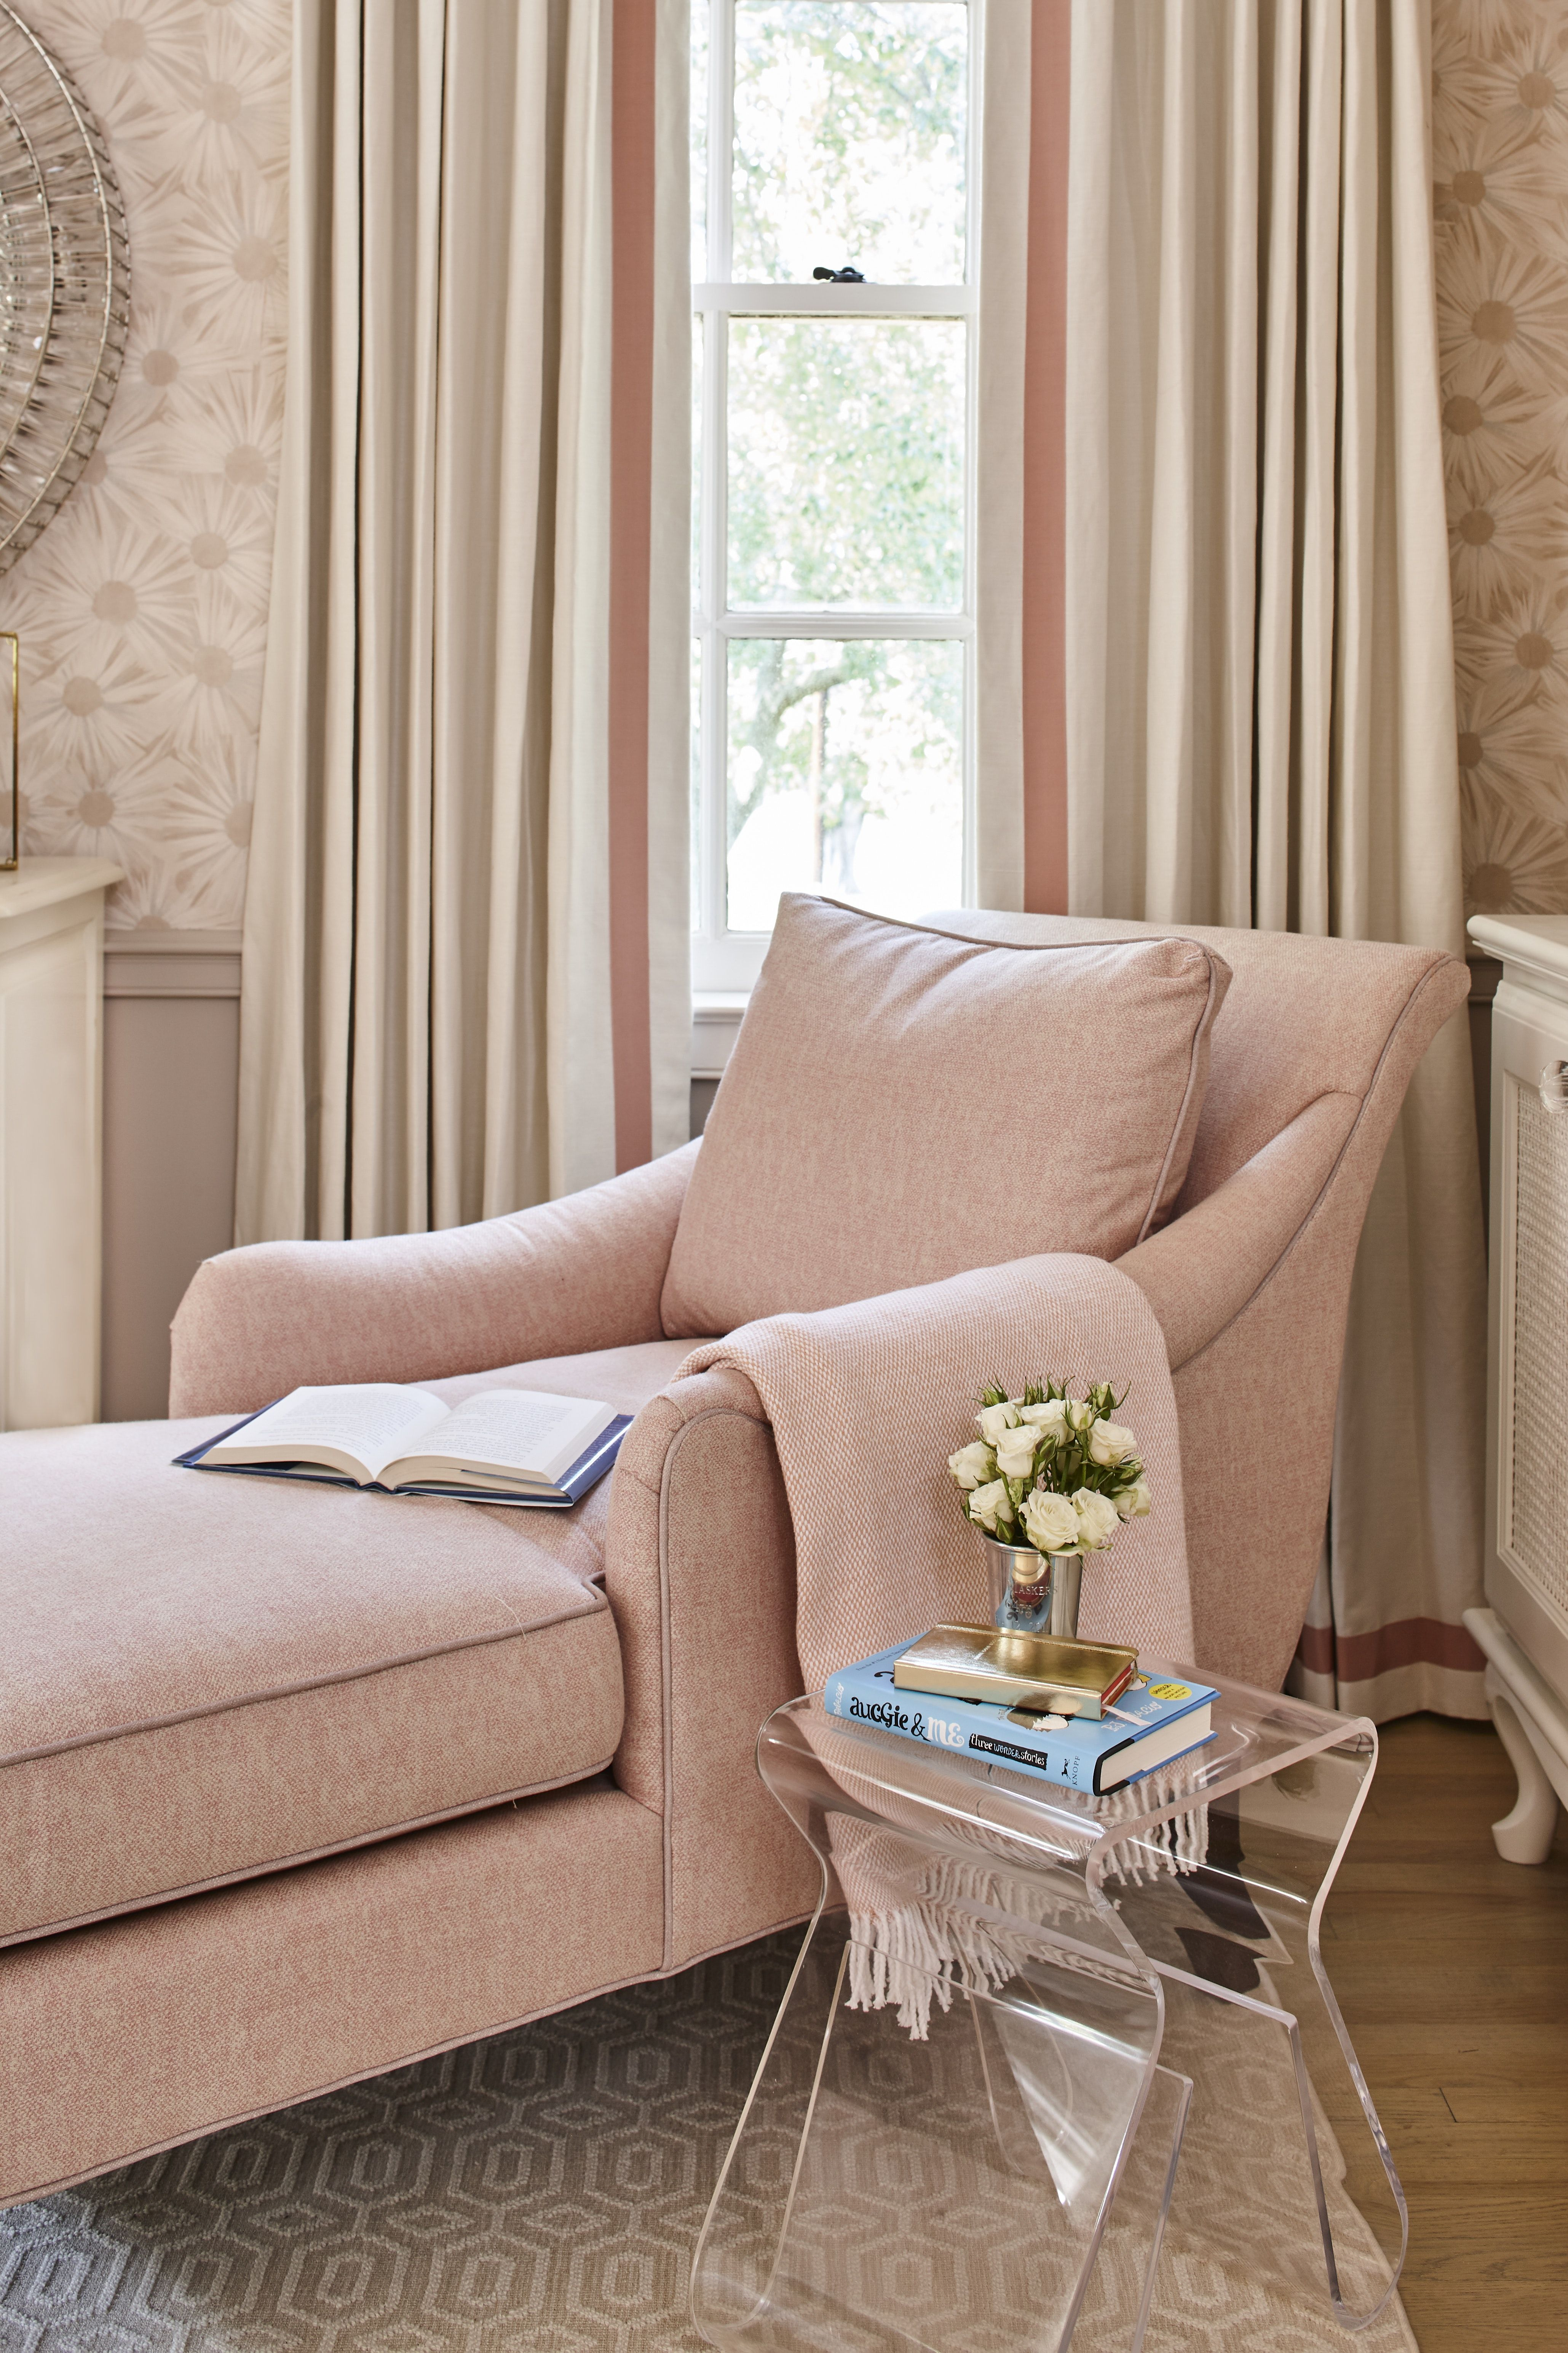 Pink Sitting Room Lounge Chair Flowers Wall Paper By Ashley Gilbreath Interior Design